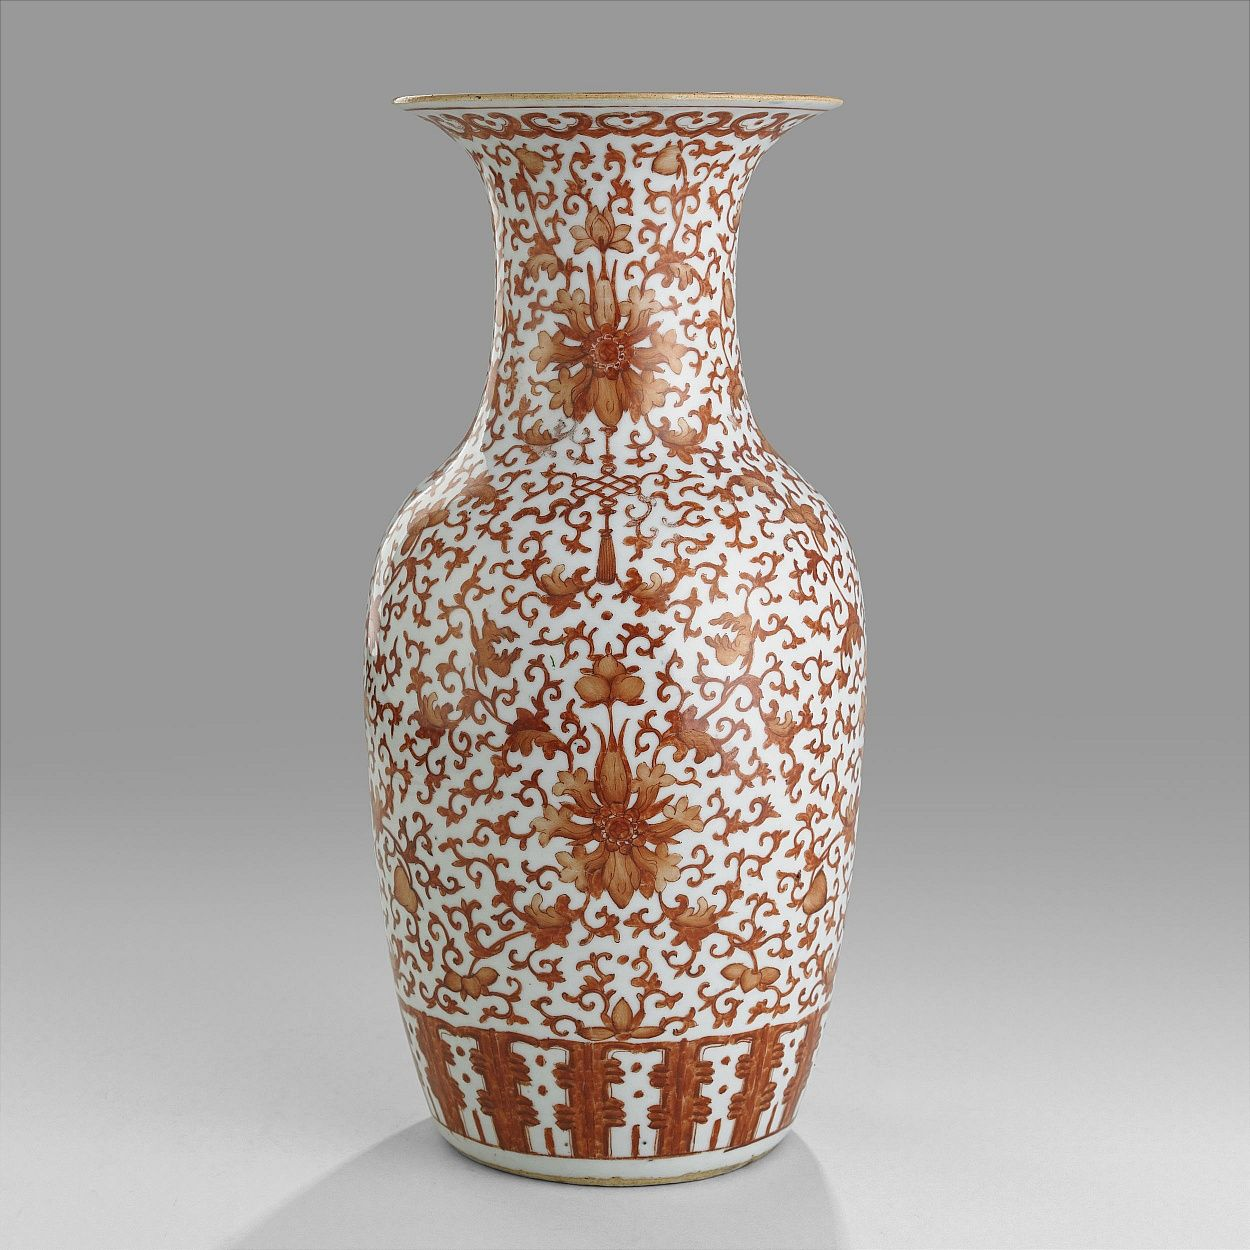 An Iron-Red Vase, 19th century, Qing dinasty